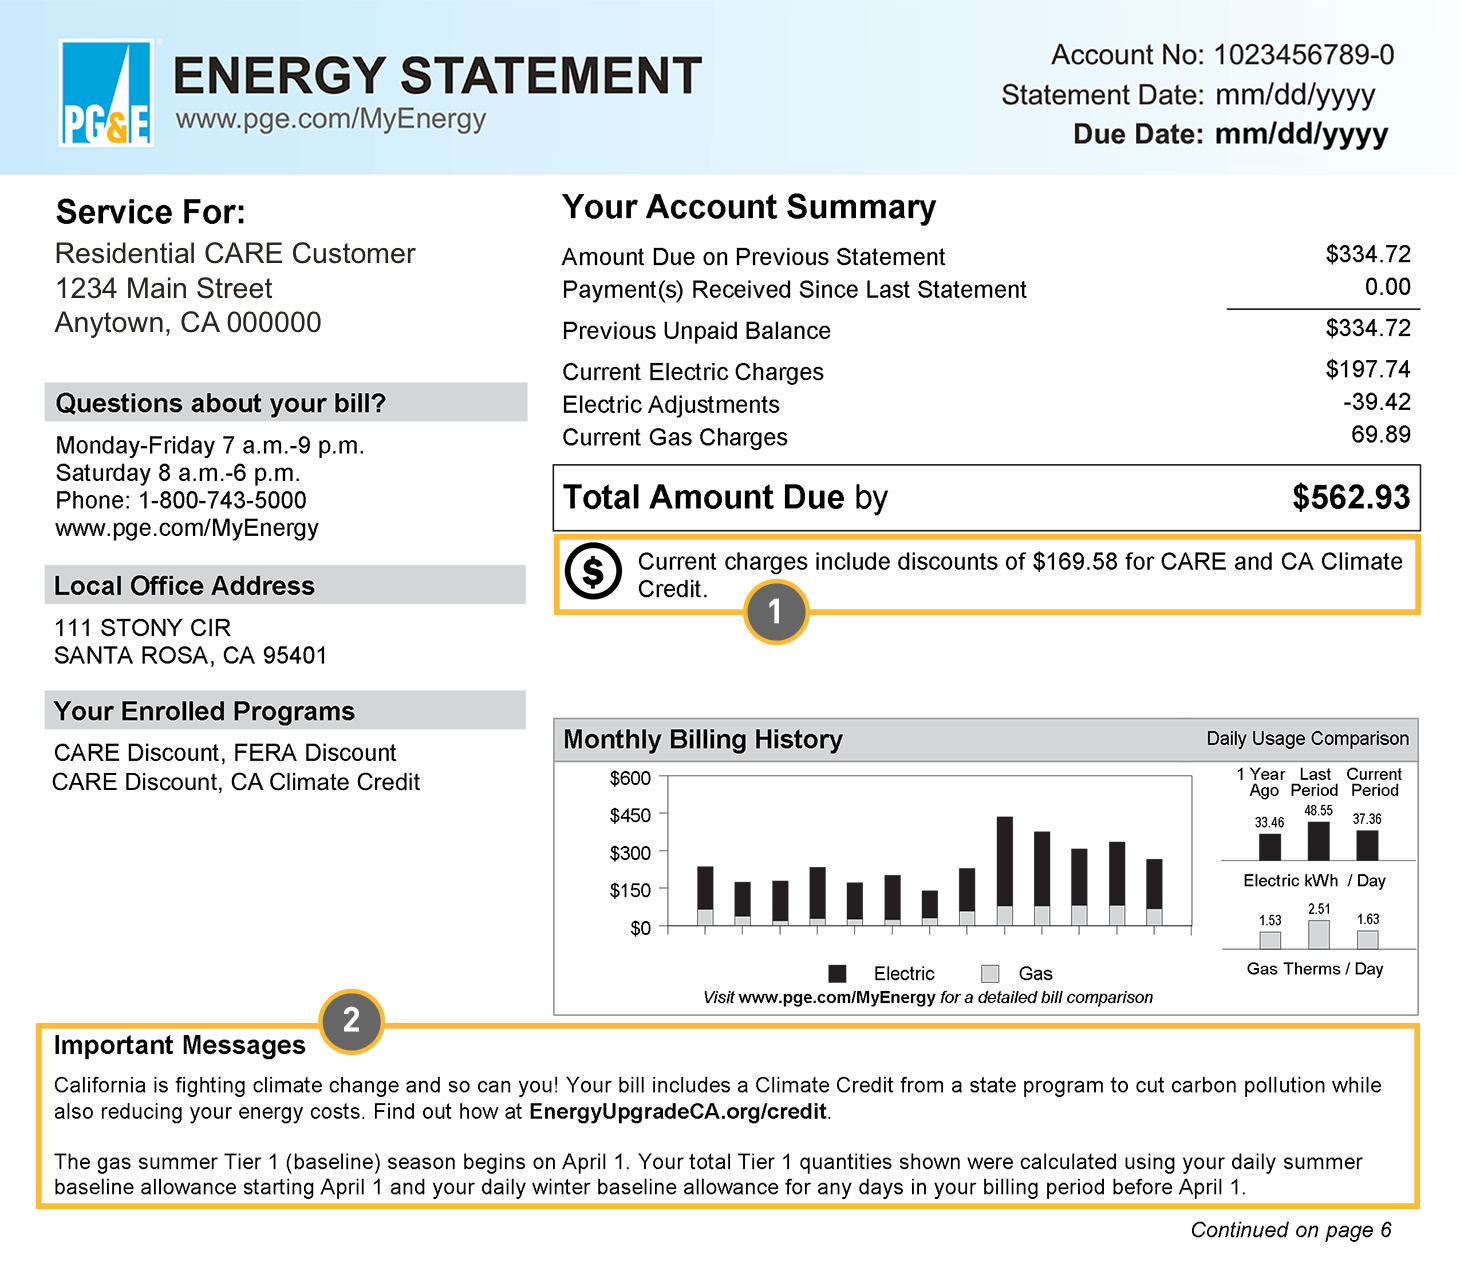 Energy Statement Page 1 The California Climate Credit Amount Is Listed Below Your Account